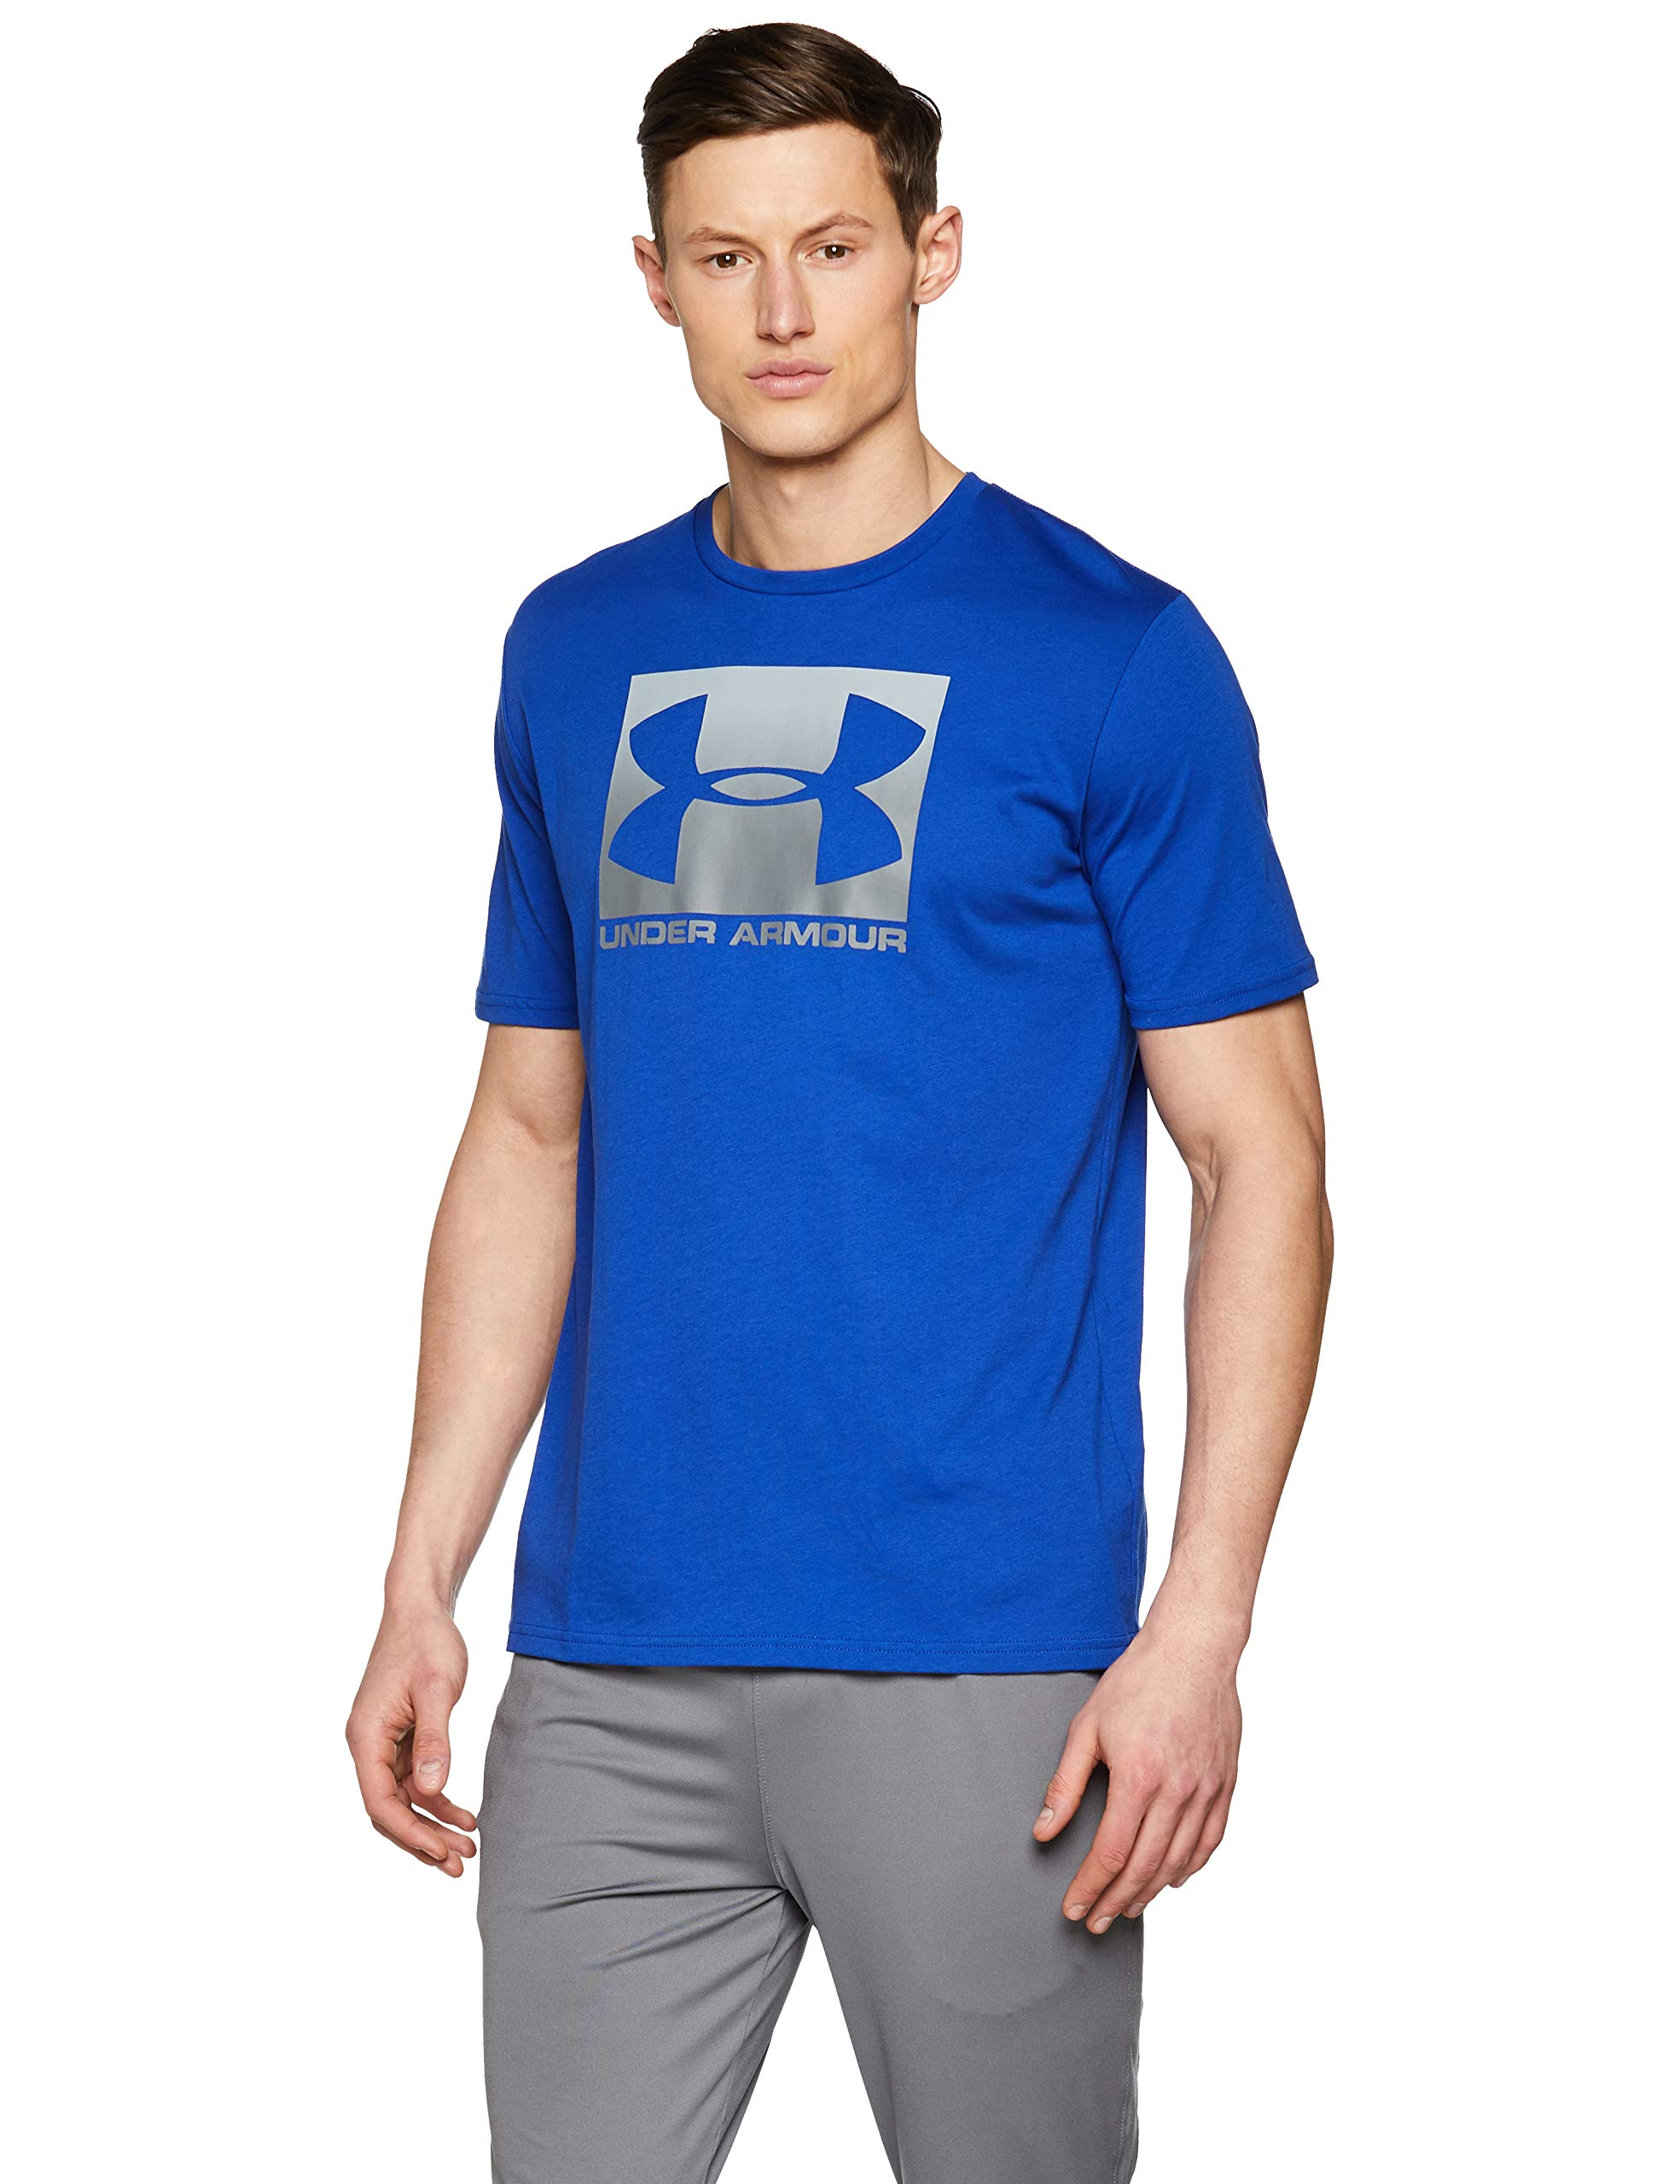 Under Armour Men's Boxed Sportstyle Short Sleeve Shirt, Royal (400)/Graphite, Medium by Under Armour